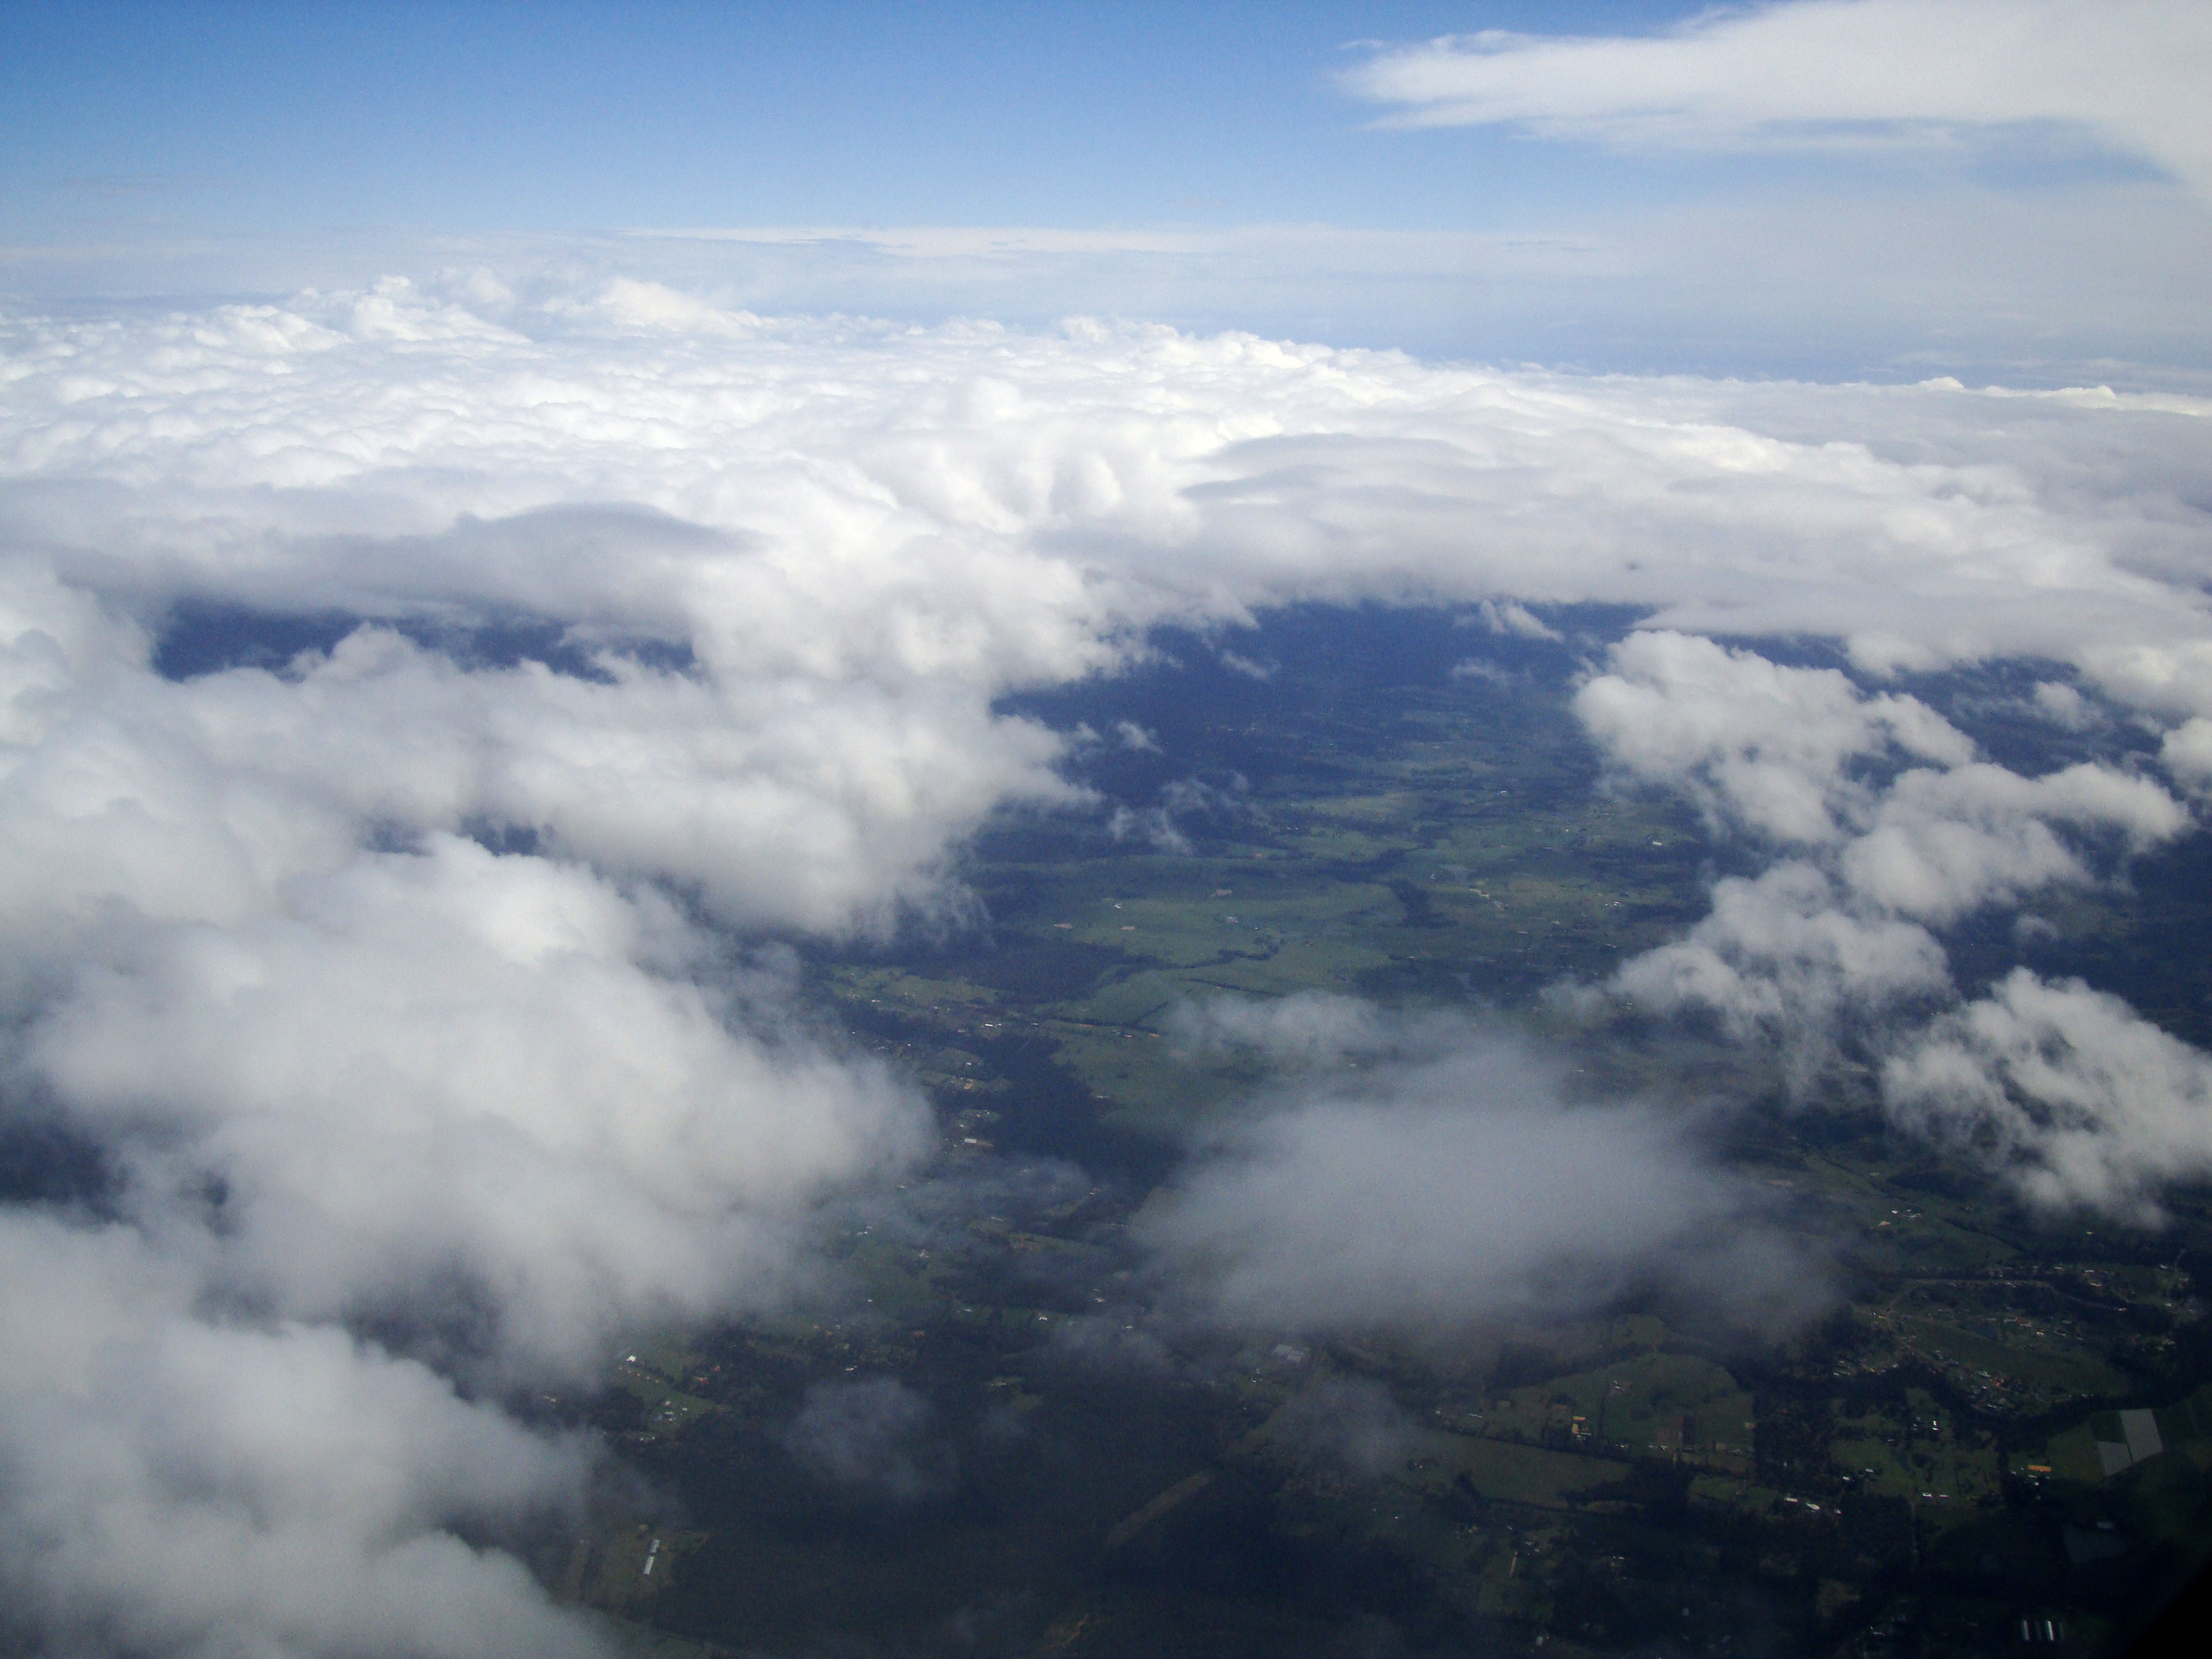 Textures Clouds Formations Sky Storms Weather Phenomena Aerial Views 13